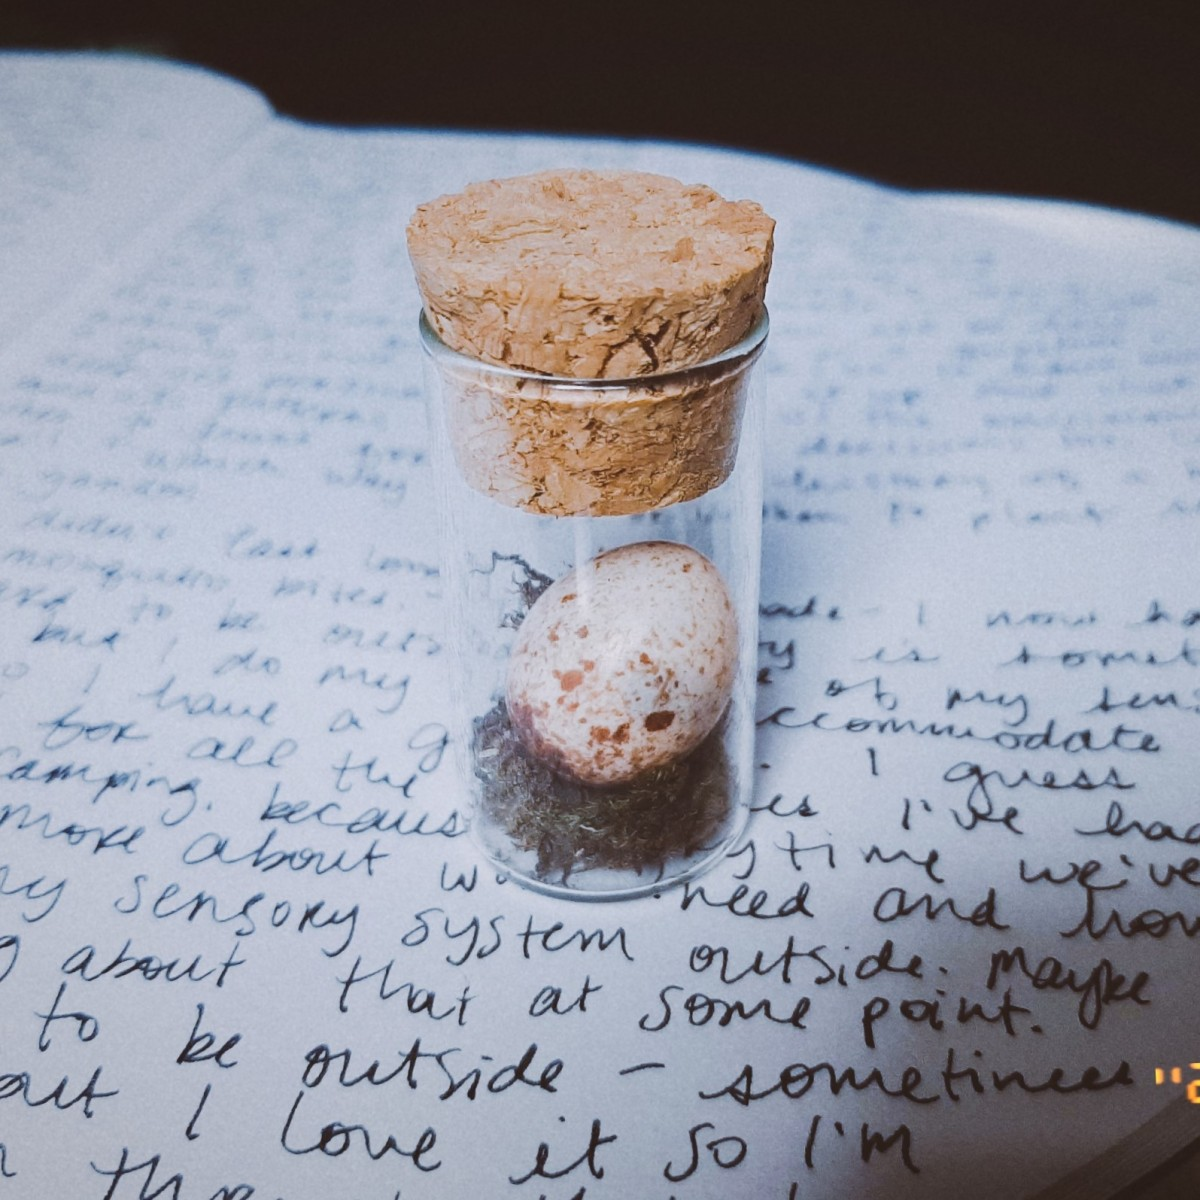 A small glass jar with cork top resting on a notebook with cursive writing. Inside the jar is a small speckled bird egg resting on some moss. The content of the journal is the text in this blog post.